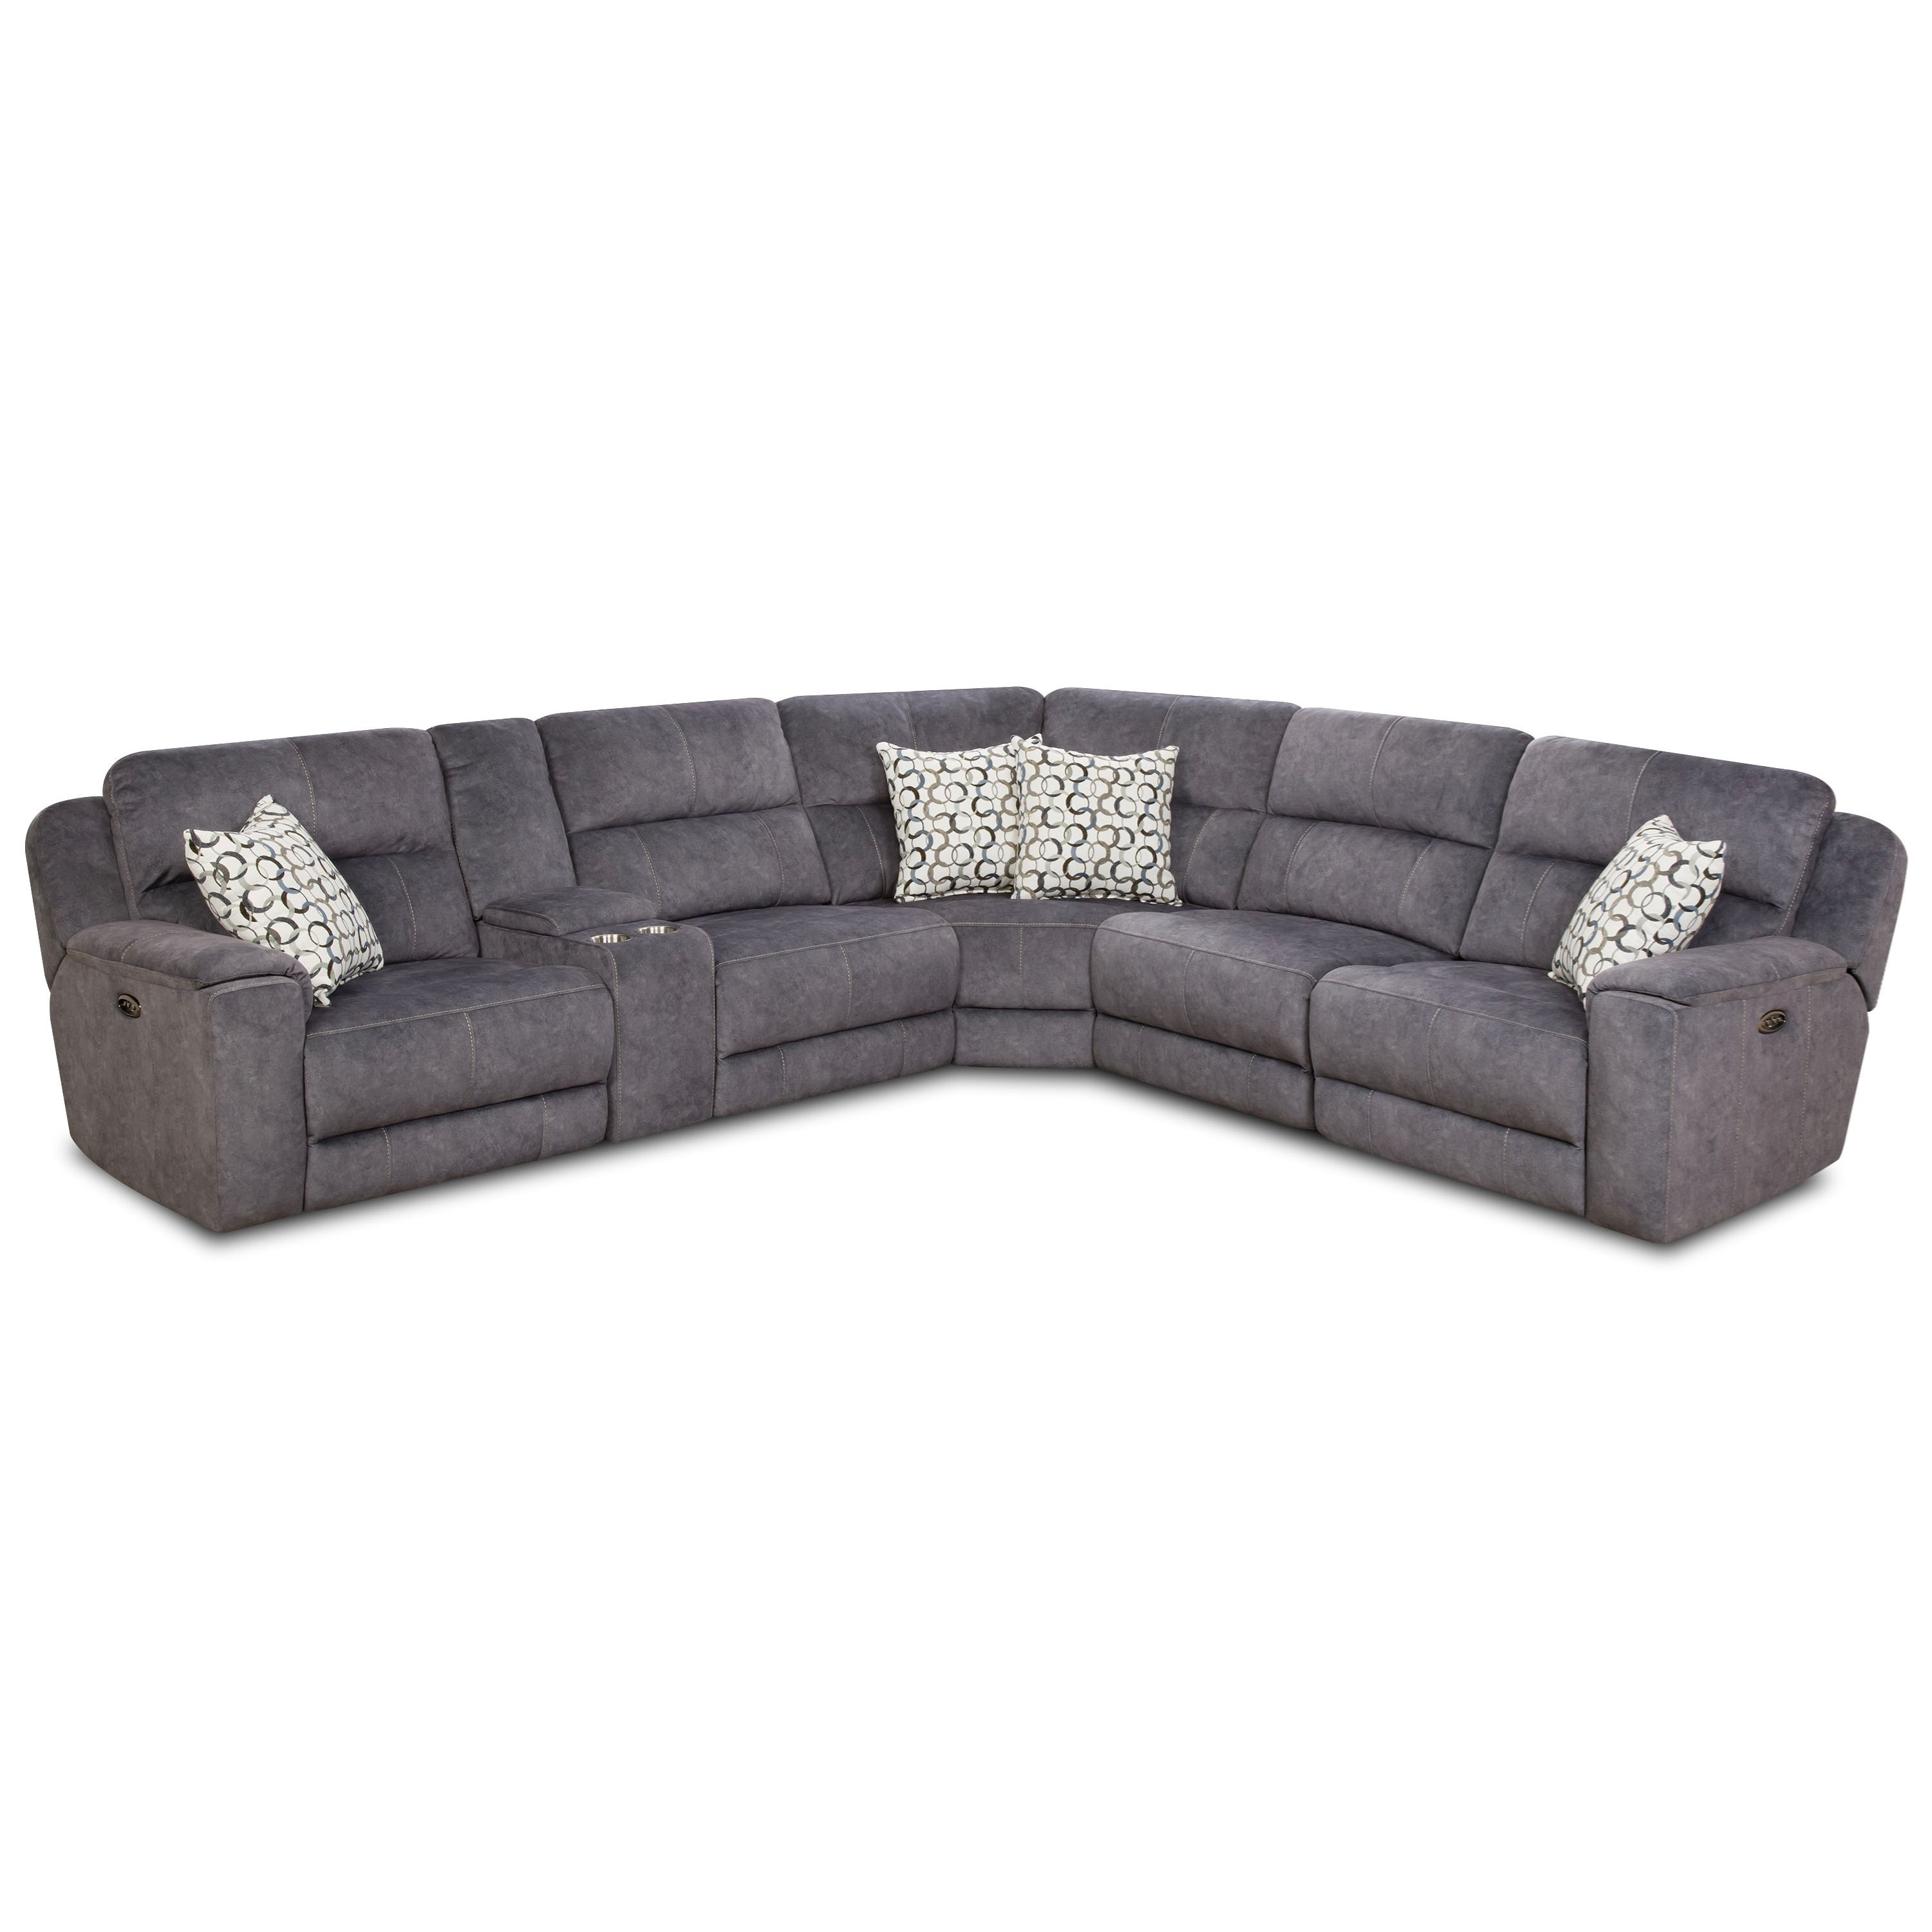 Corinthian 79003 Power Reclining Sectional Sofa (4 Recliners) - Gill Brothers Furniture - Reclining Sectional Sofas  sc 1 st  Gill Brothers Furniture : corinthian sectional sofa - Sectionals, Sofas & Couches